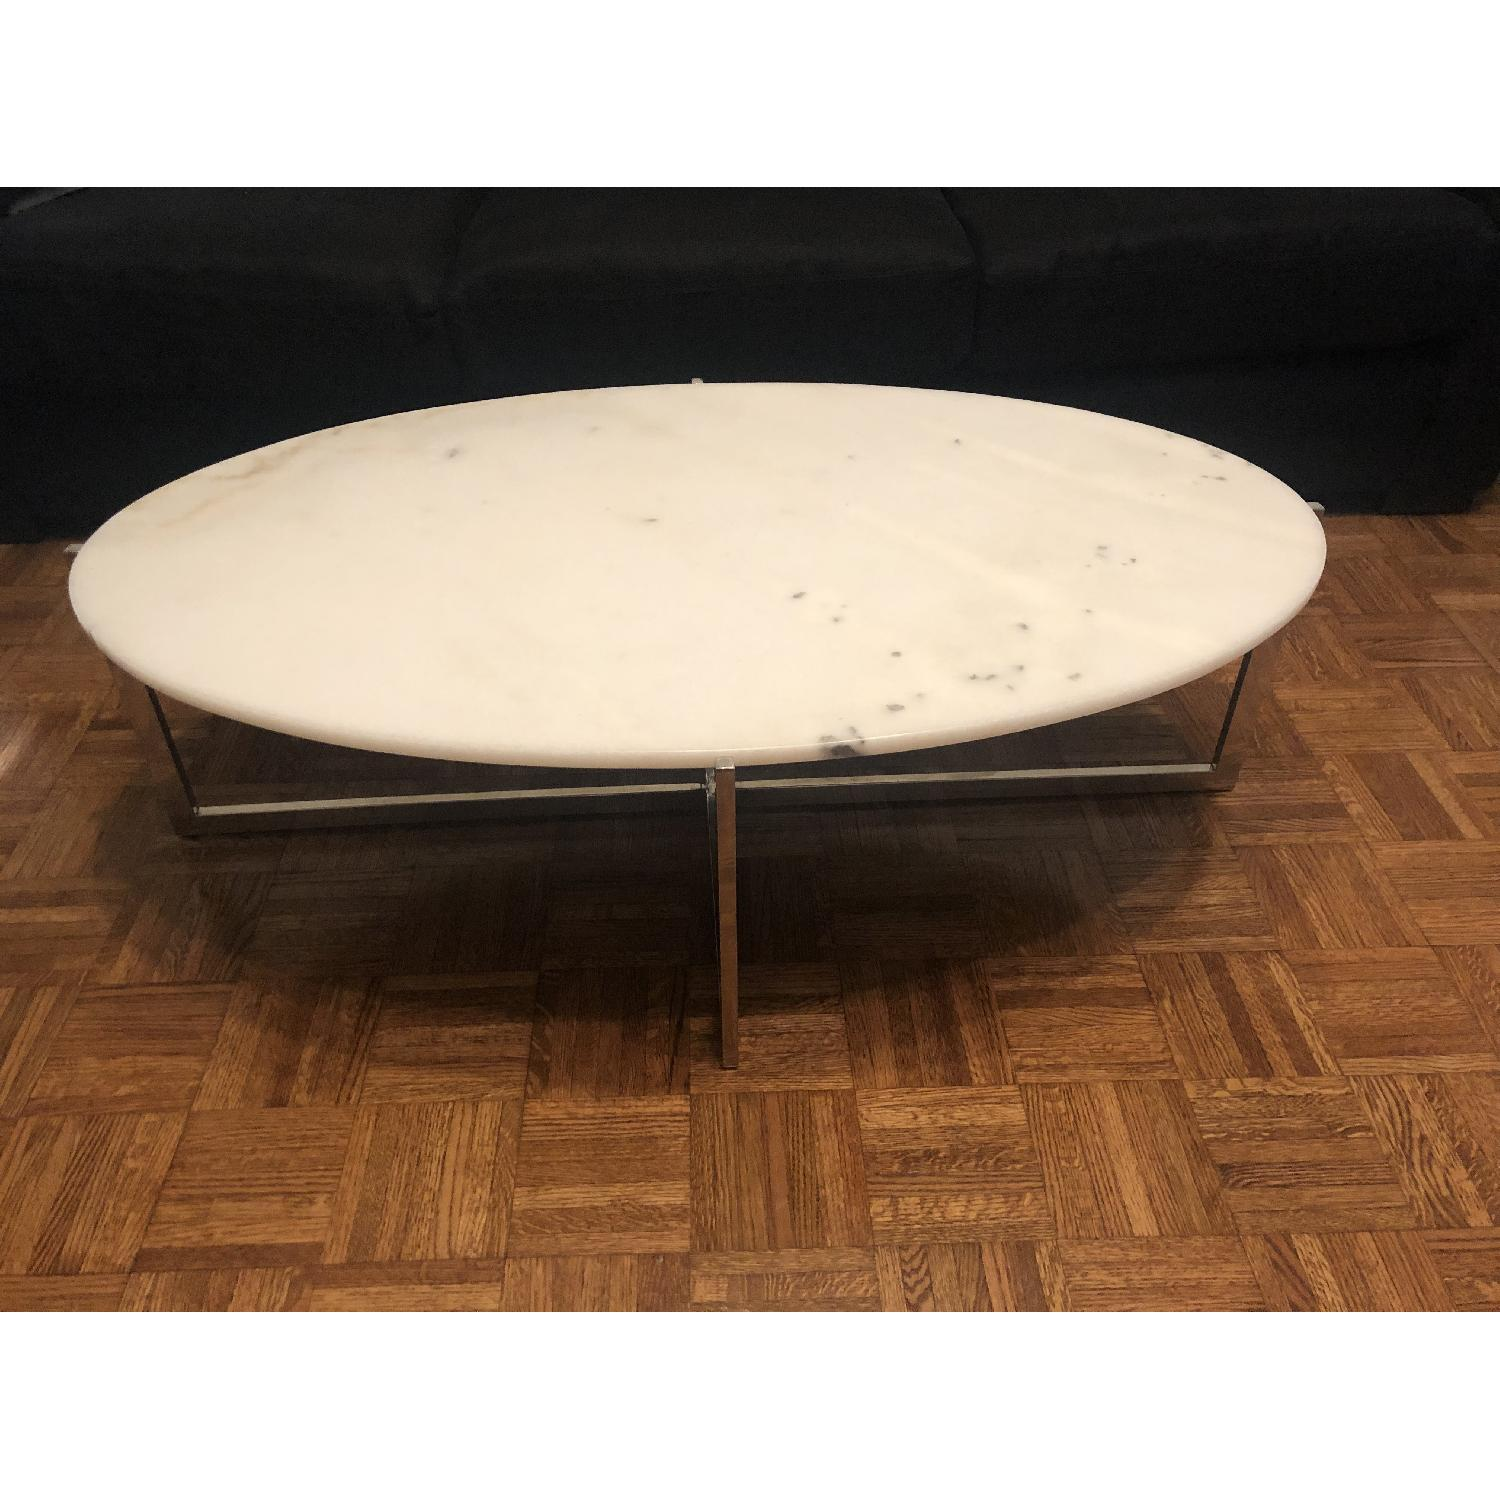 France and Son Oval Cantilevered Marble Coffee Table - image-2